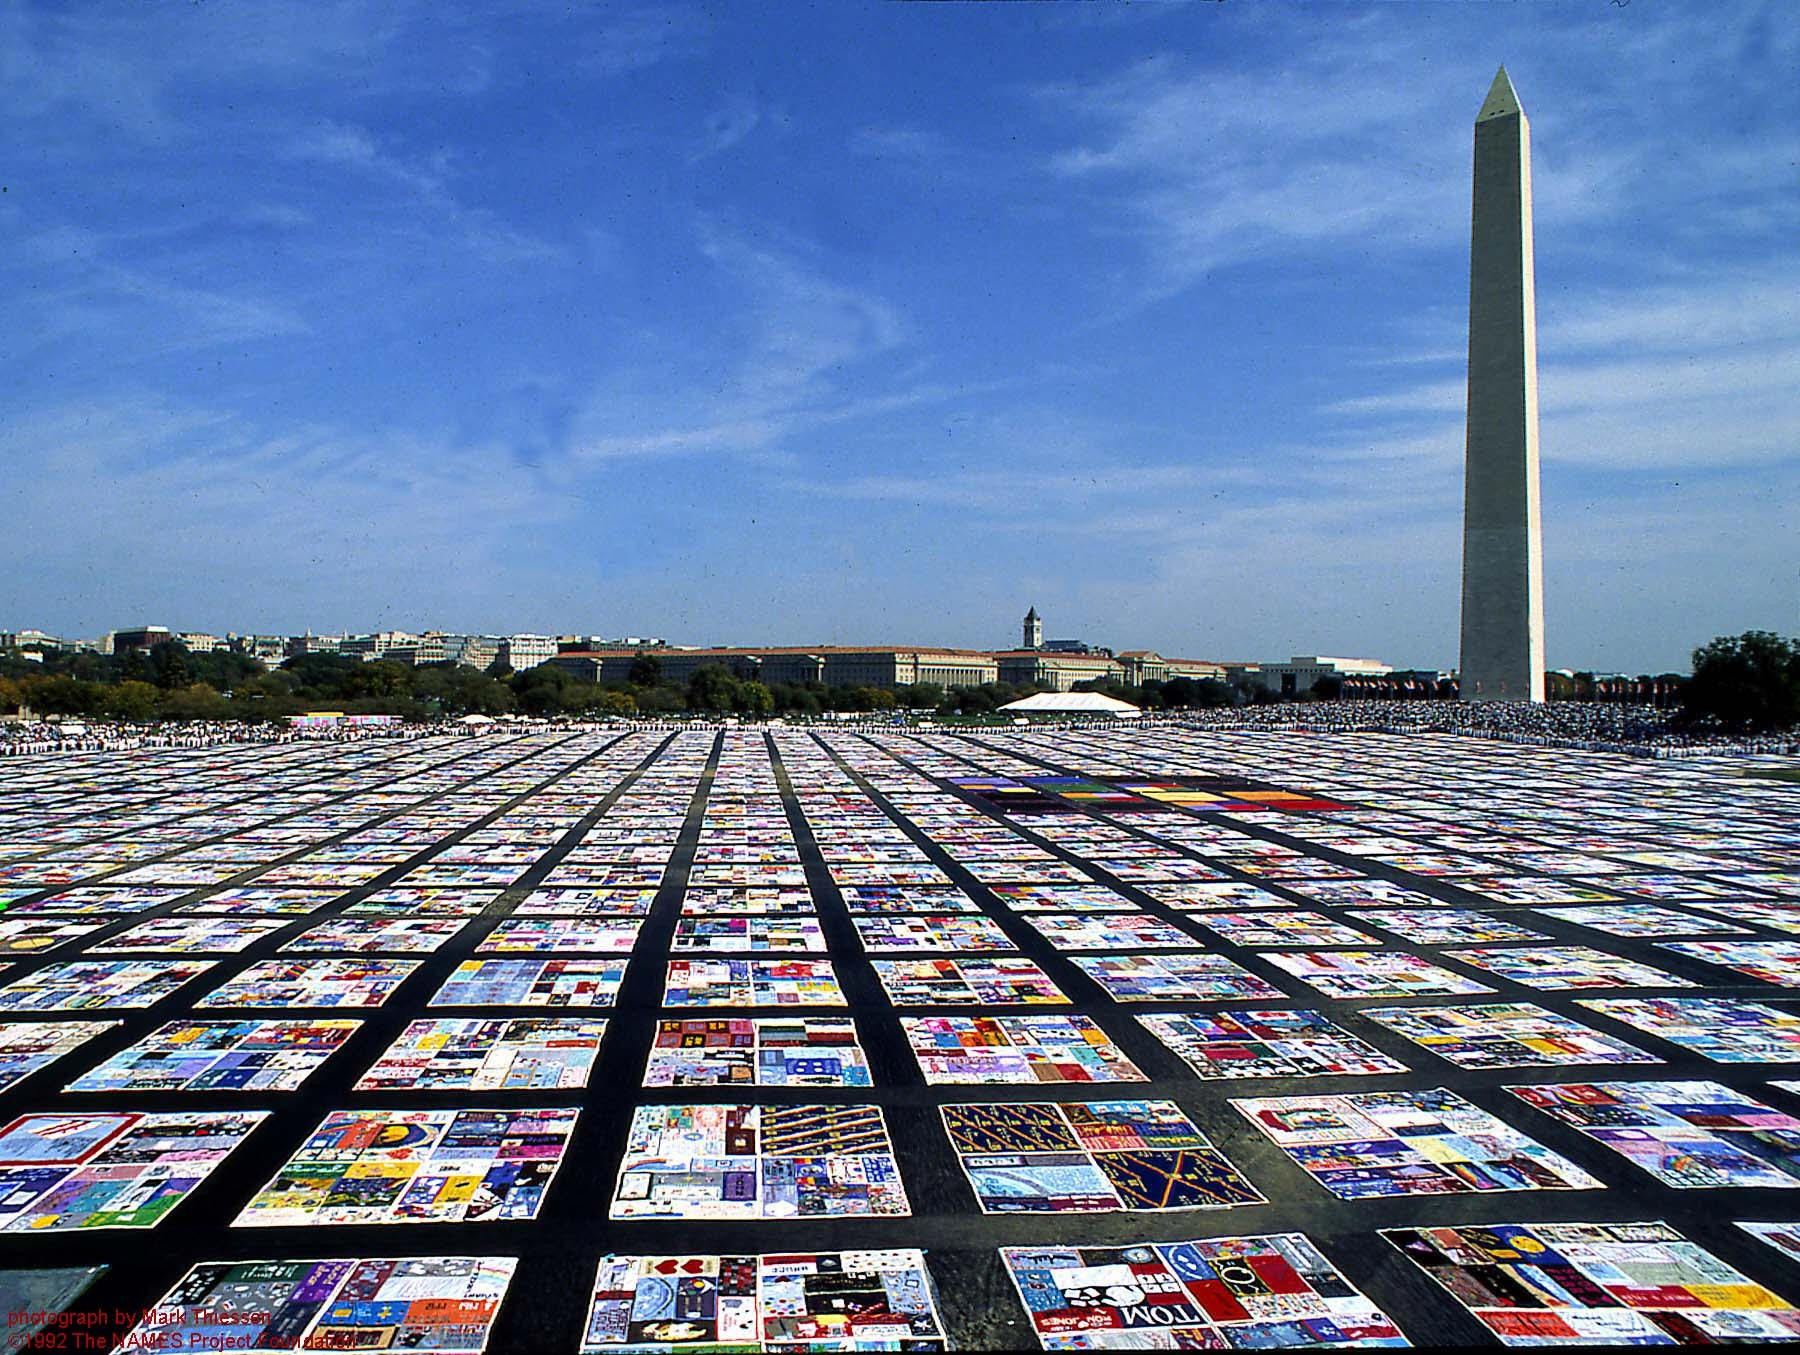 The Aids Memorial Qult: each of the nearly 1,920 panels is dedicated to a vicitm of the pandemic